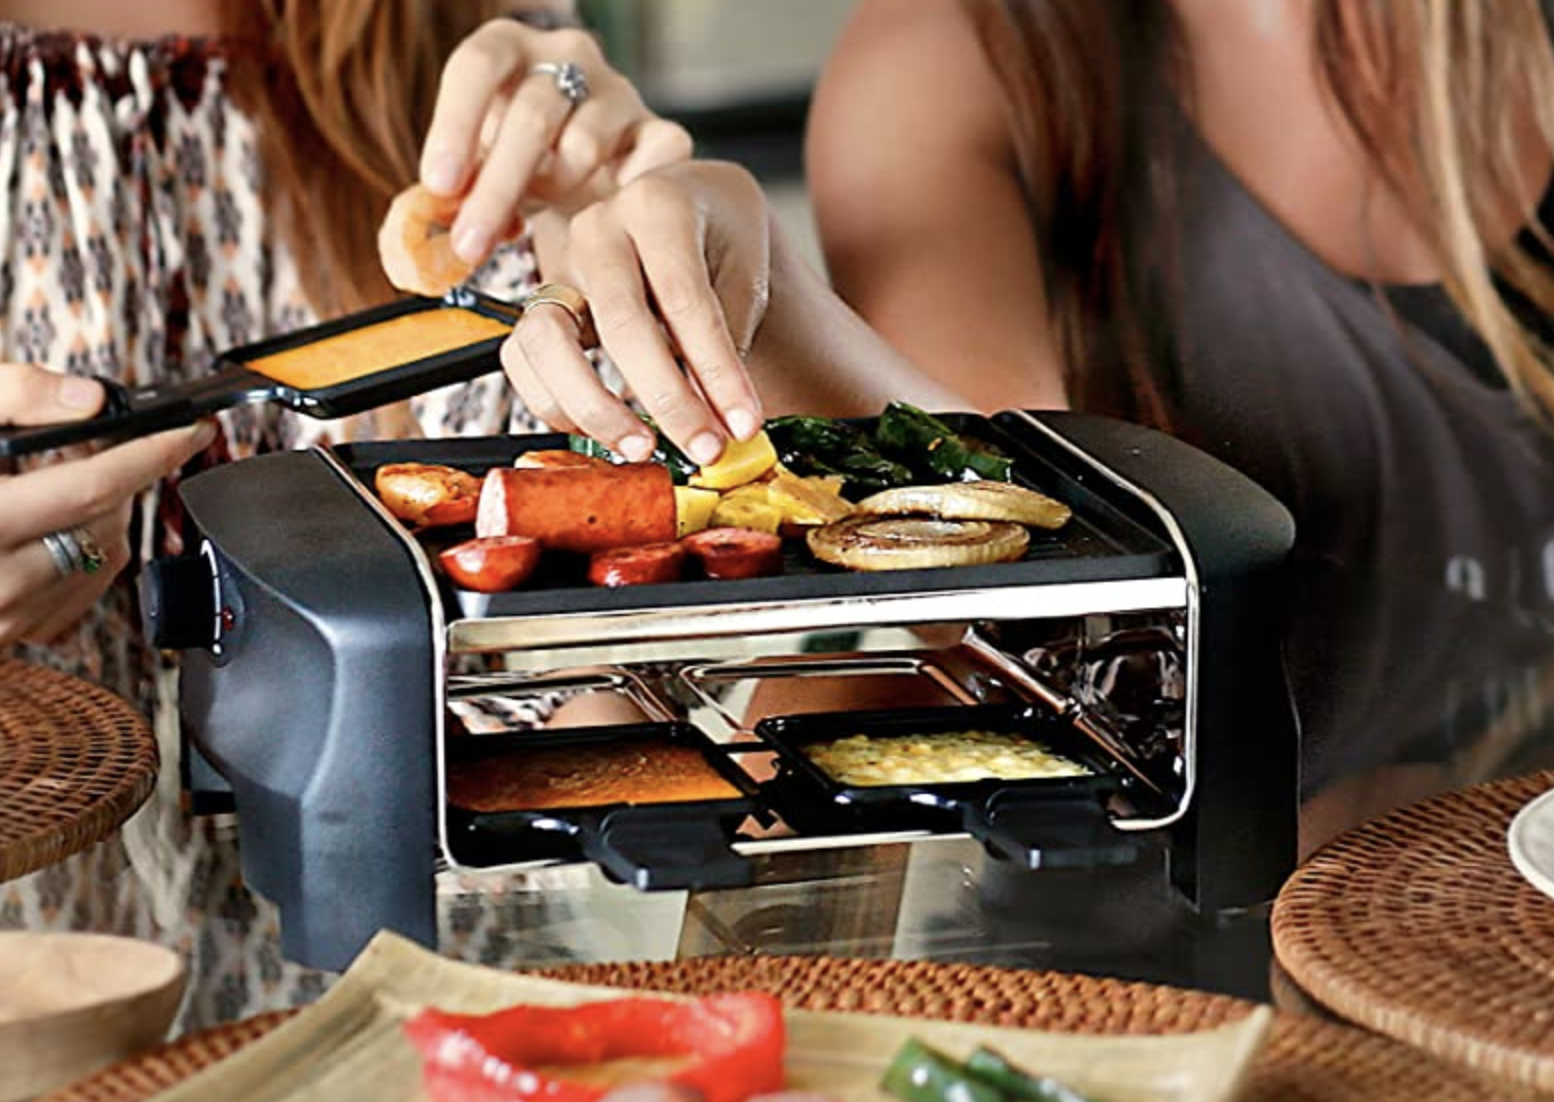 People eating from the four person raclette with a grill on top on a place to put your own grill on the bottom